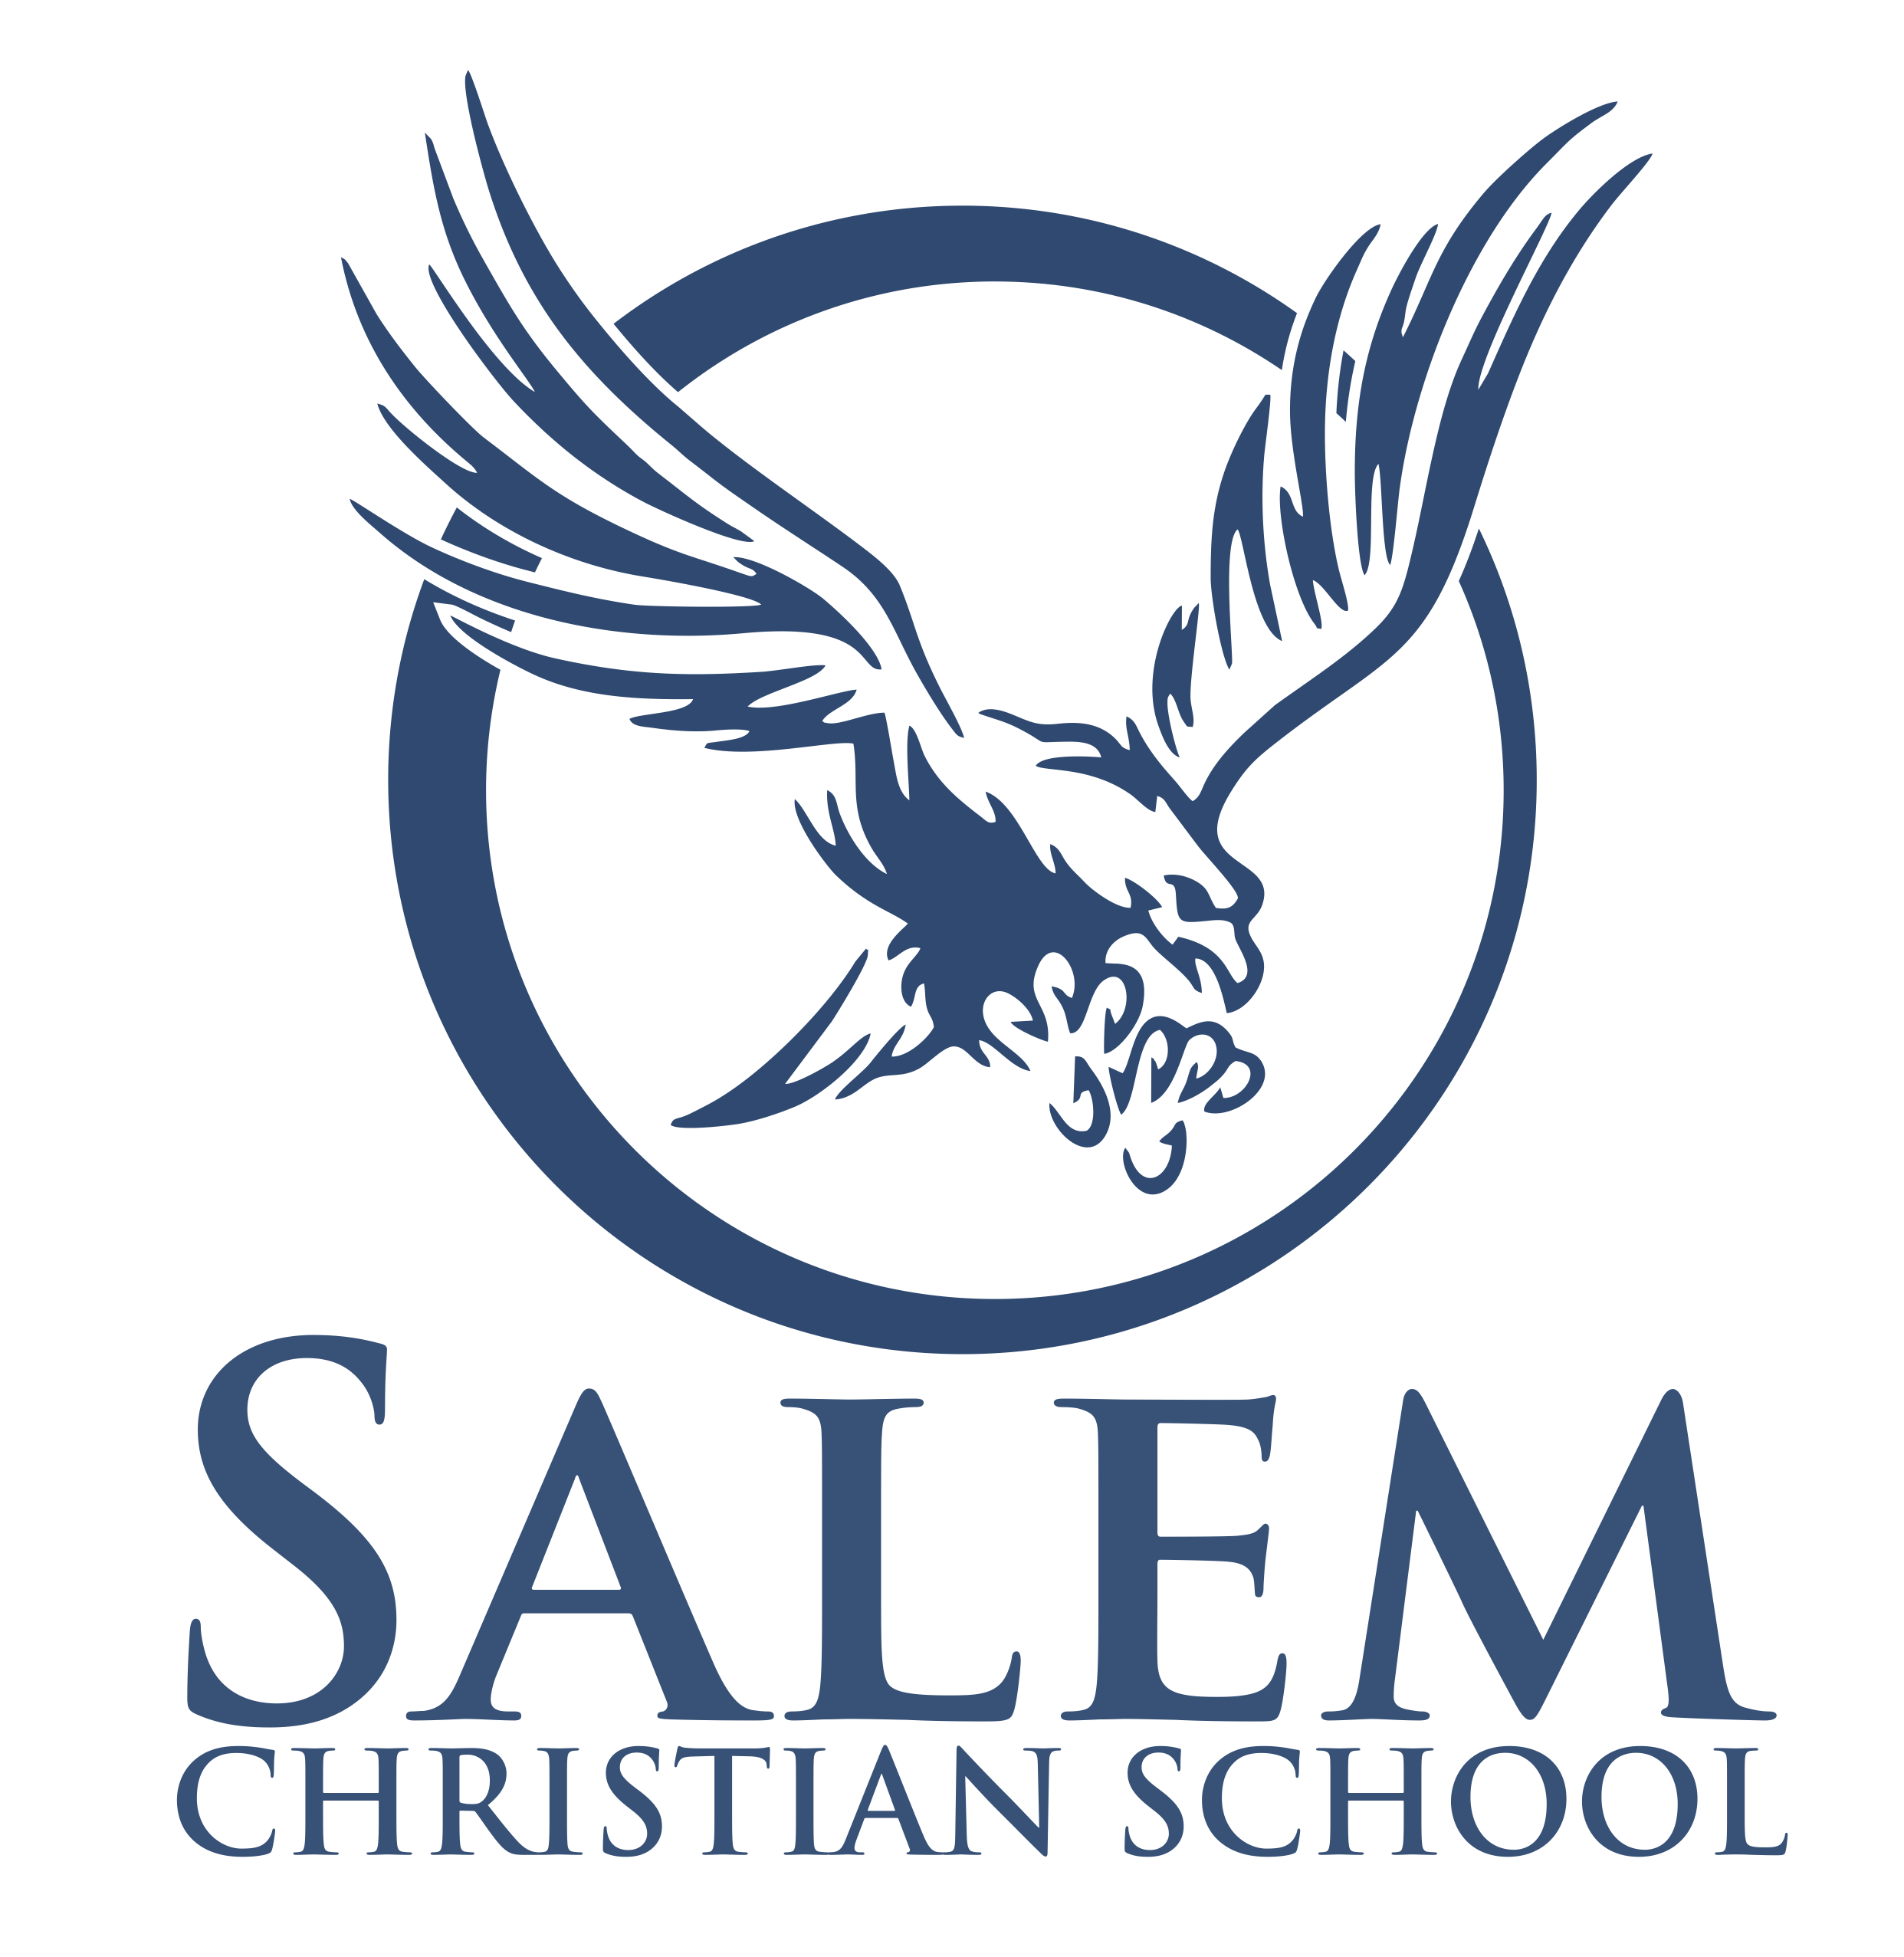 salem christian school png logo 3236